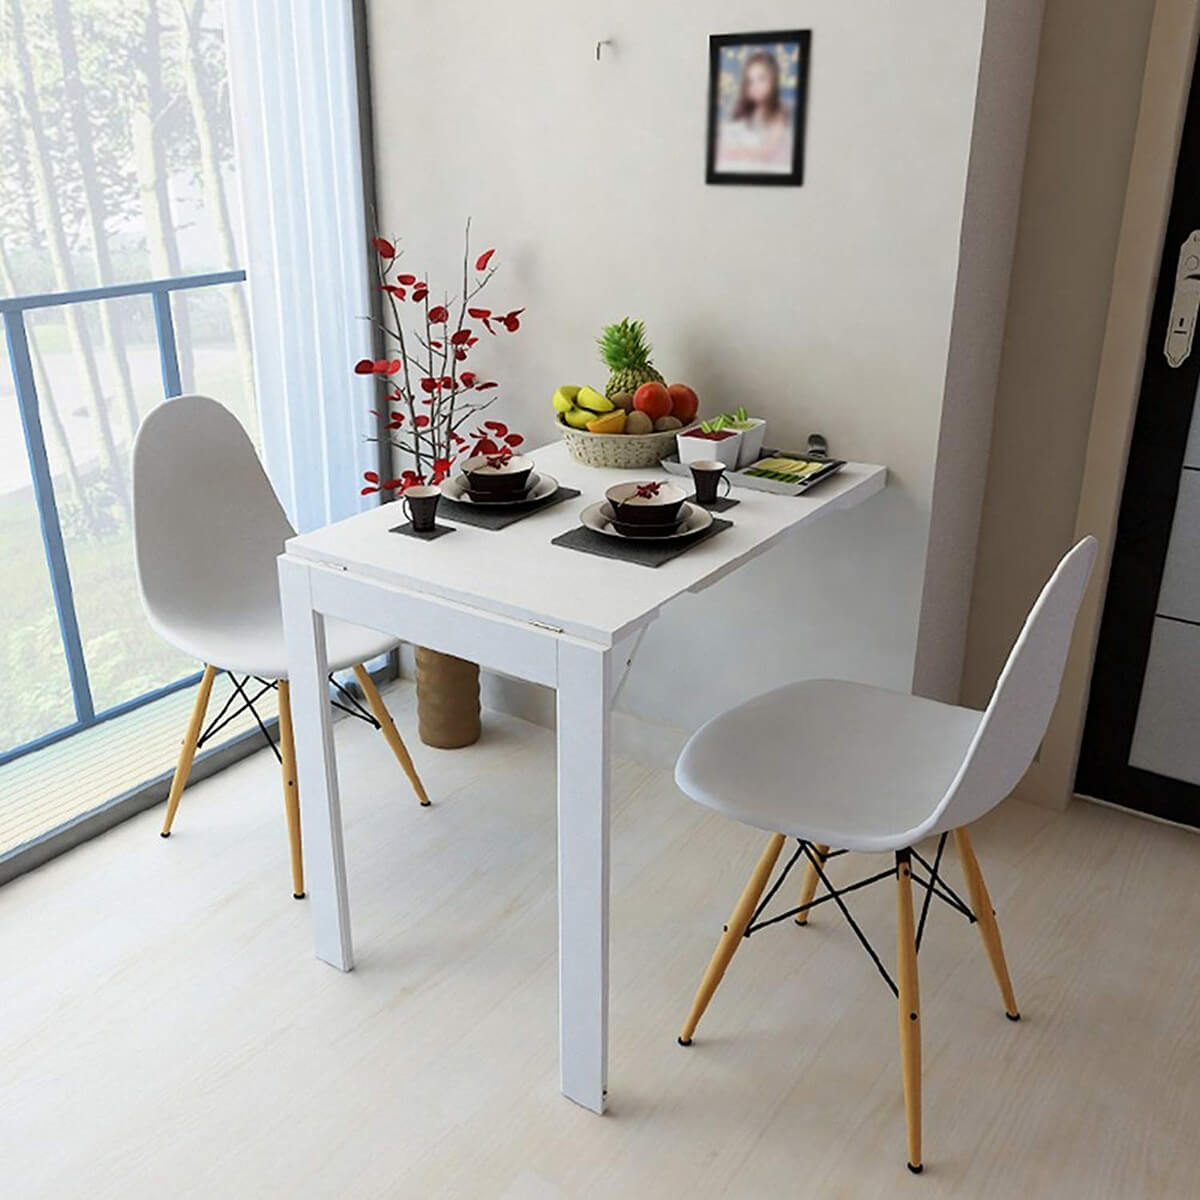 Double Sided Folding Wall Table